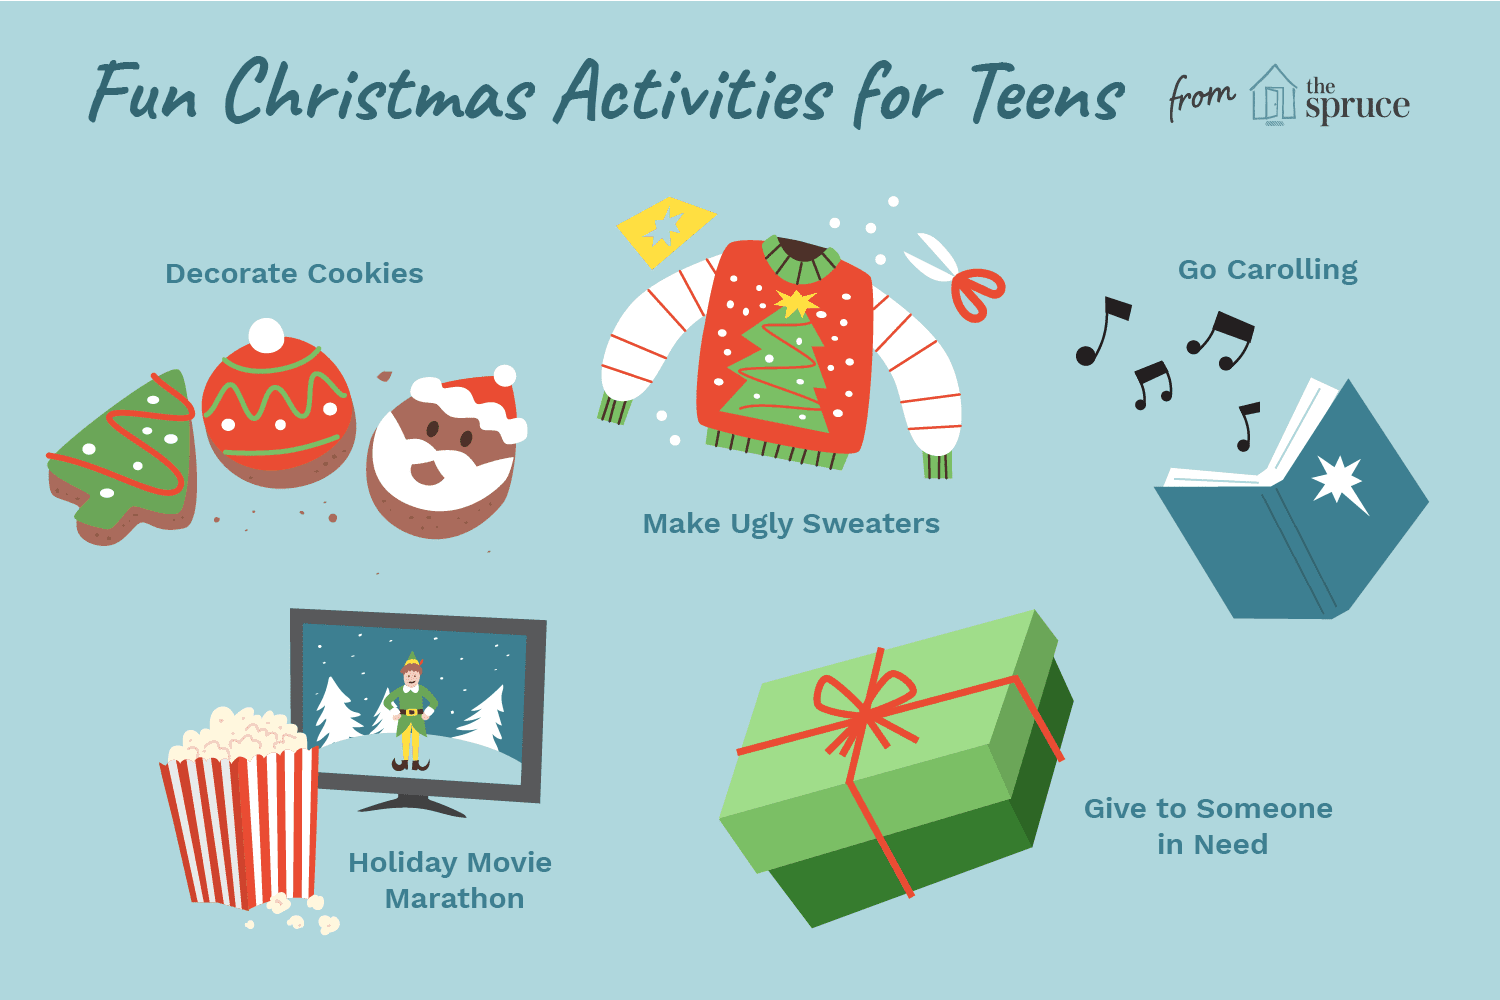 8 Fun Christmas Activities Your Teen Will Love